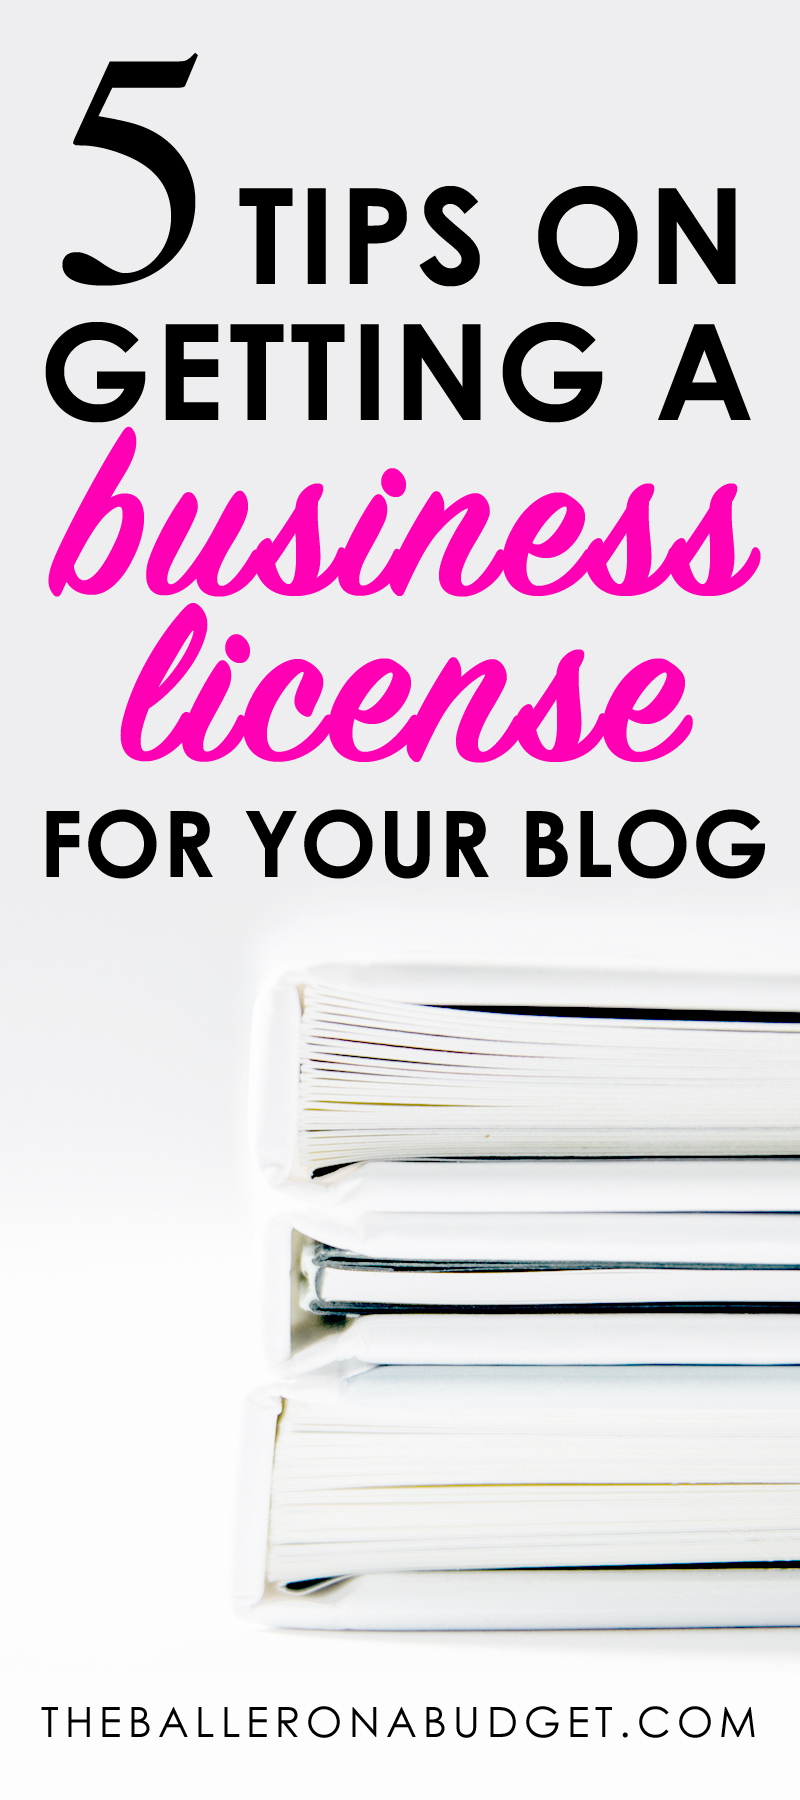 Not sure where to start when getting your business license for your blog? Here are 5 tips to prevent confusion and stress when going legit. - www.theballeronabudget.com